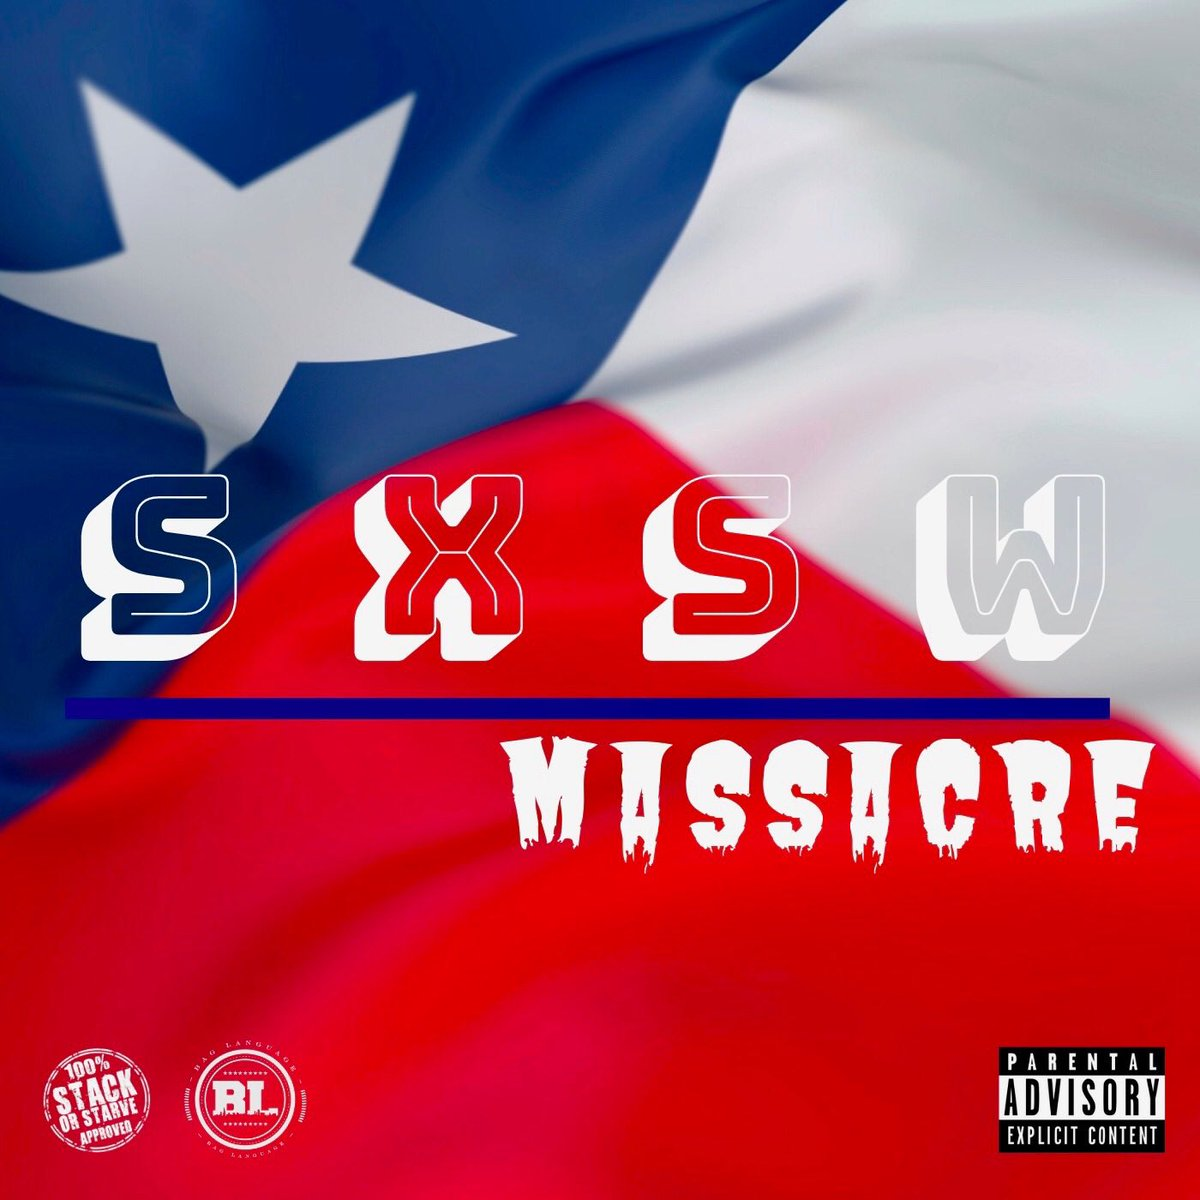 #NewMixtapeAlert @sxsw is poppin right now! #SXSW artists get your placements now!! DM US FOR INFO! Lets Work!!! #SXSWMassacre #StackOrStarveApproved #GEDEmpire #ThaReport #ThaReportDotCom Check out our latest here: